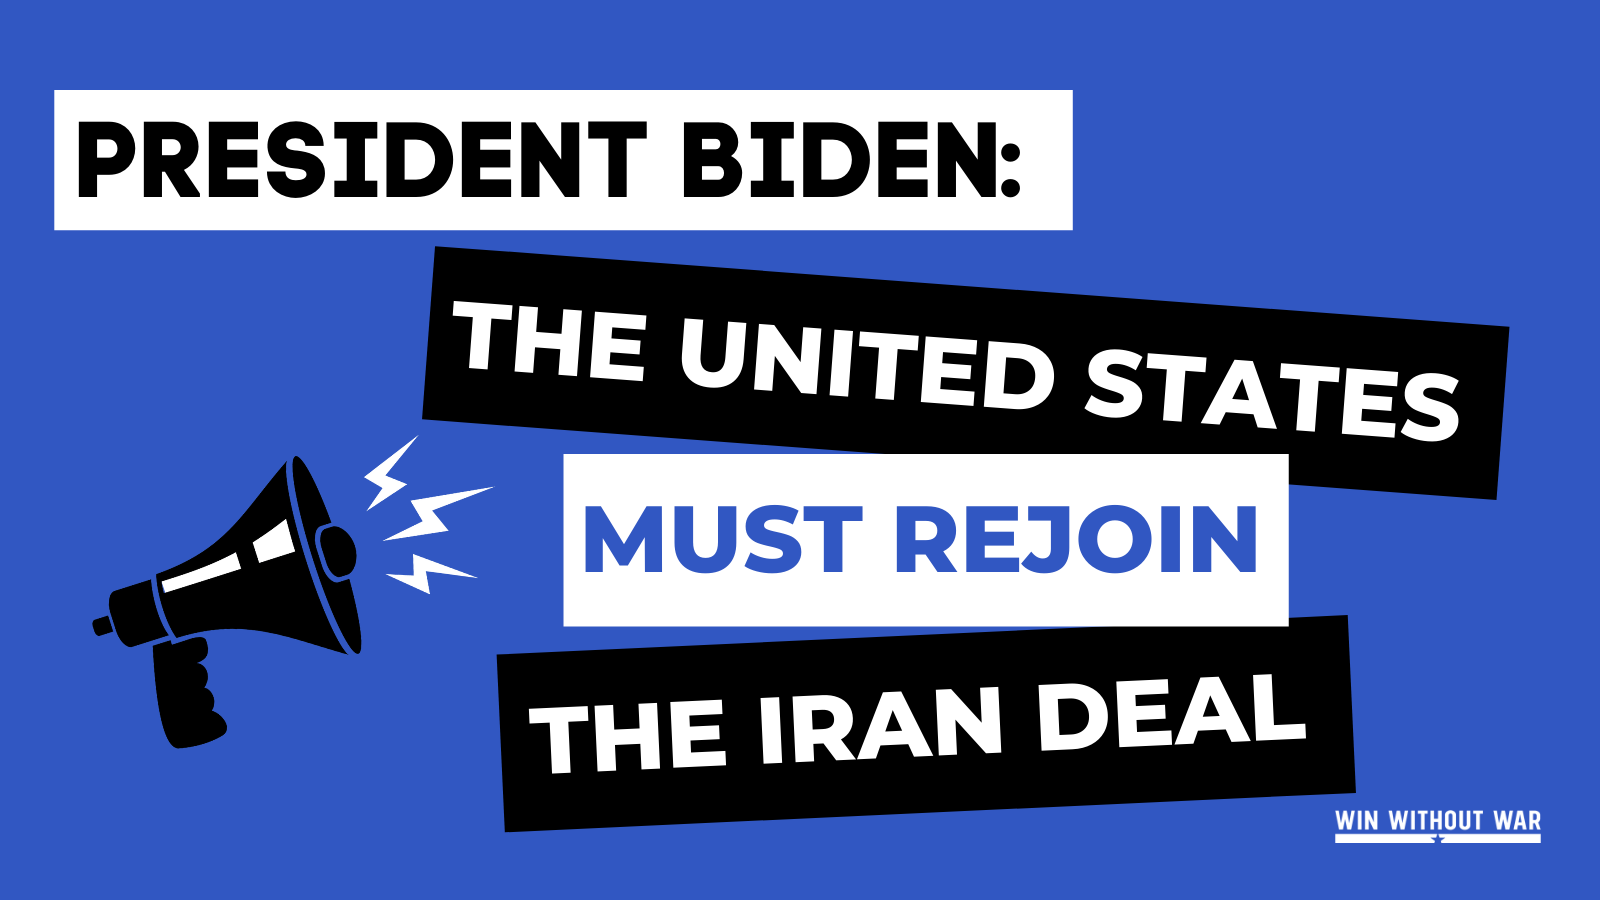 Sign if you agree: The United States must rejoin the Iran deal